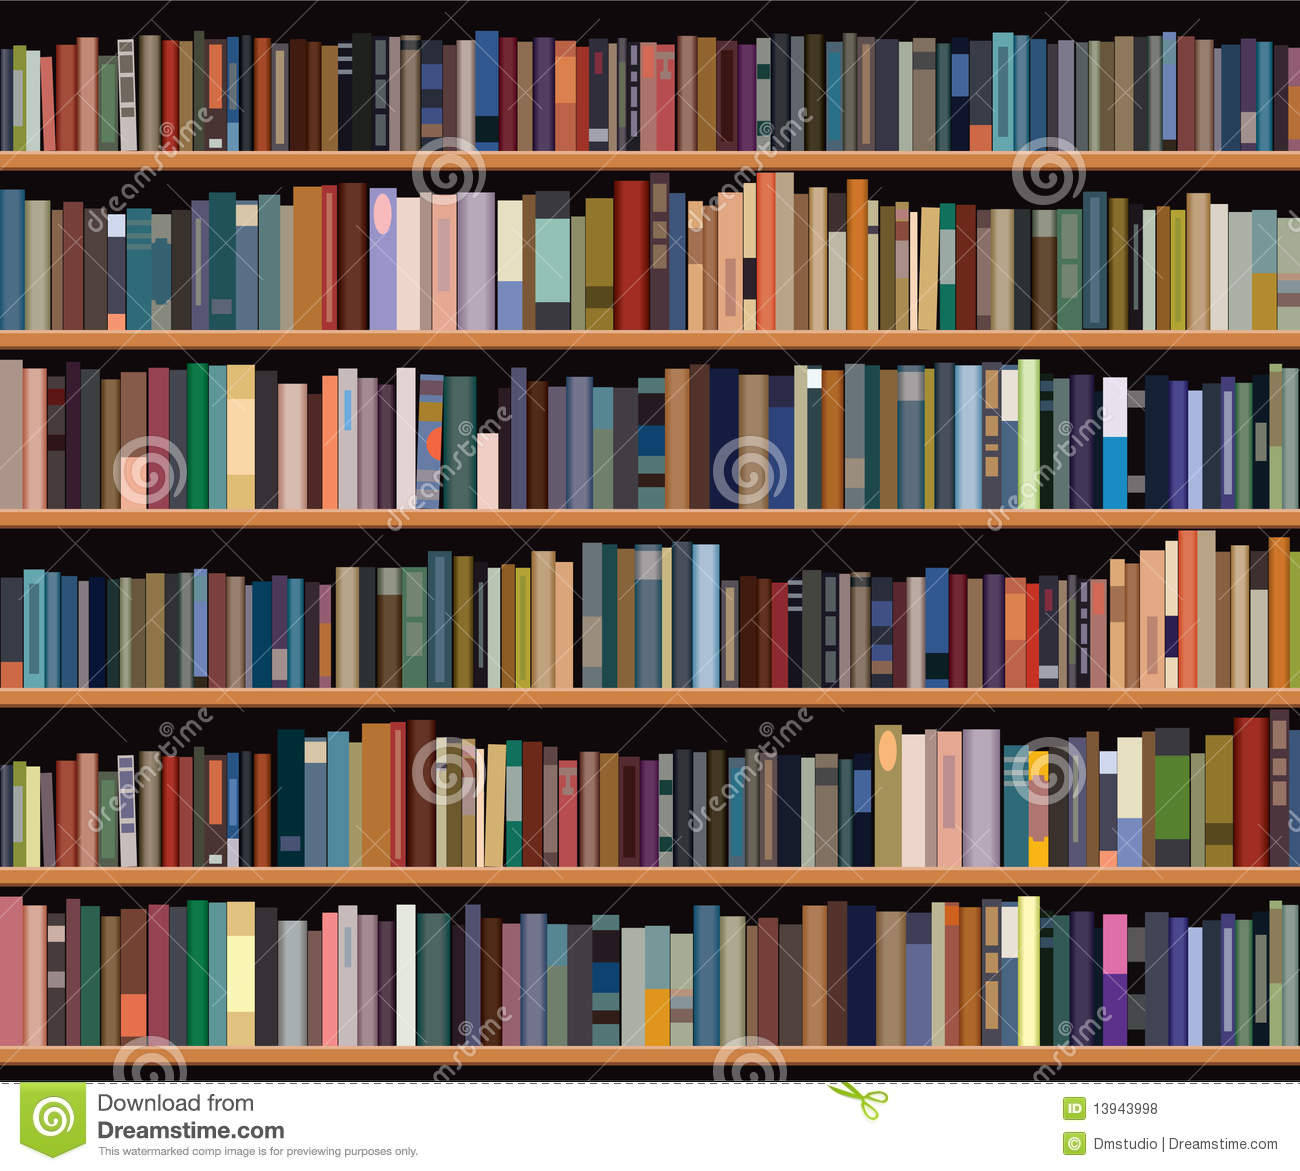 Bookshelf Royalty Free Stock Photo Bookshelf stock vector